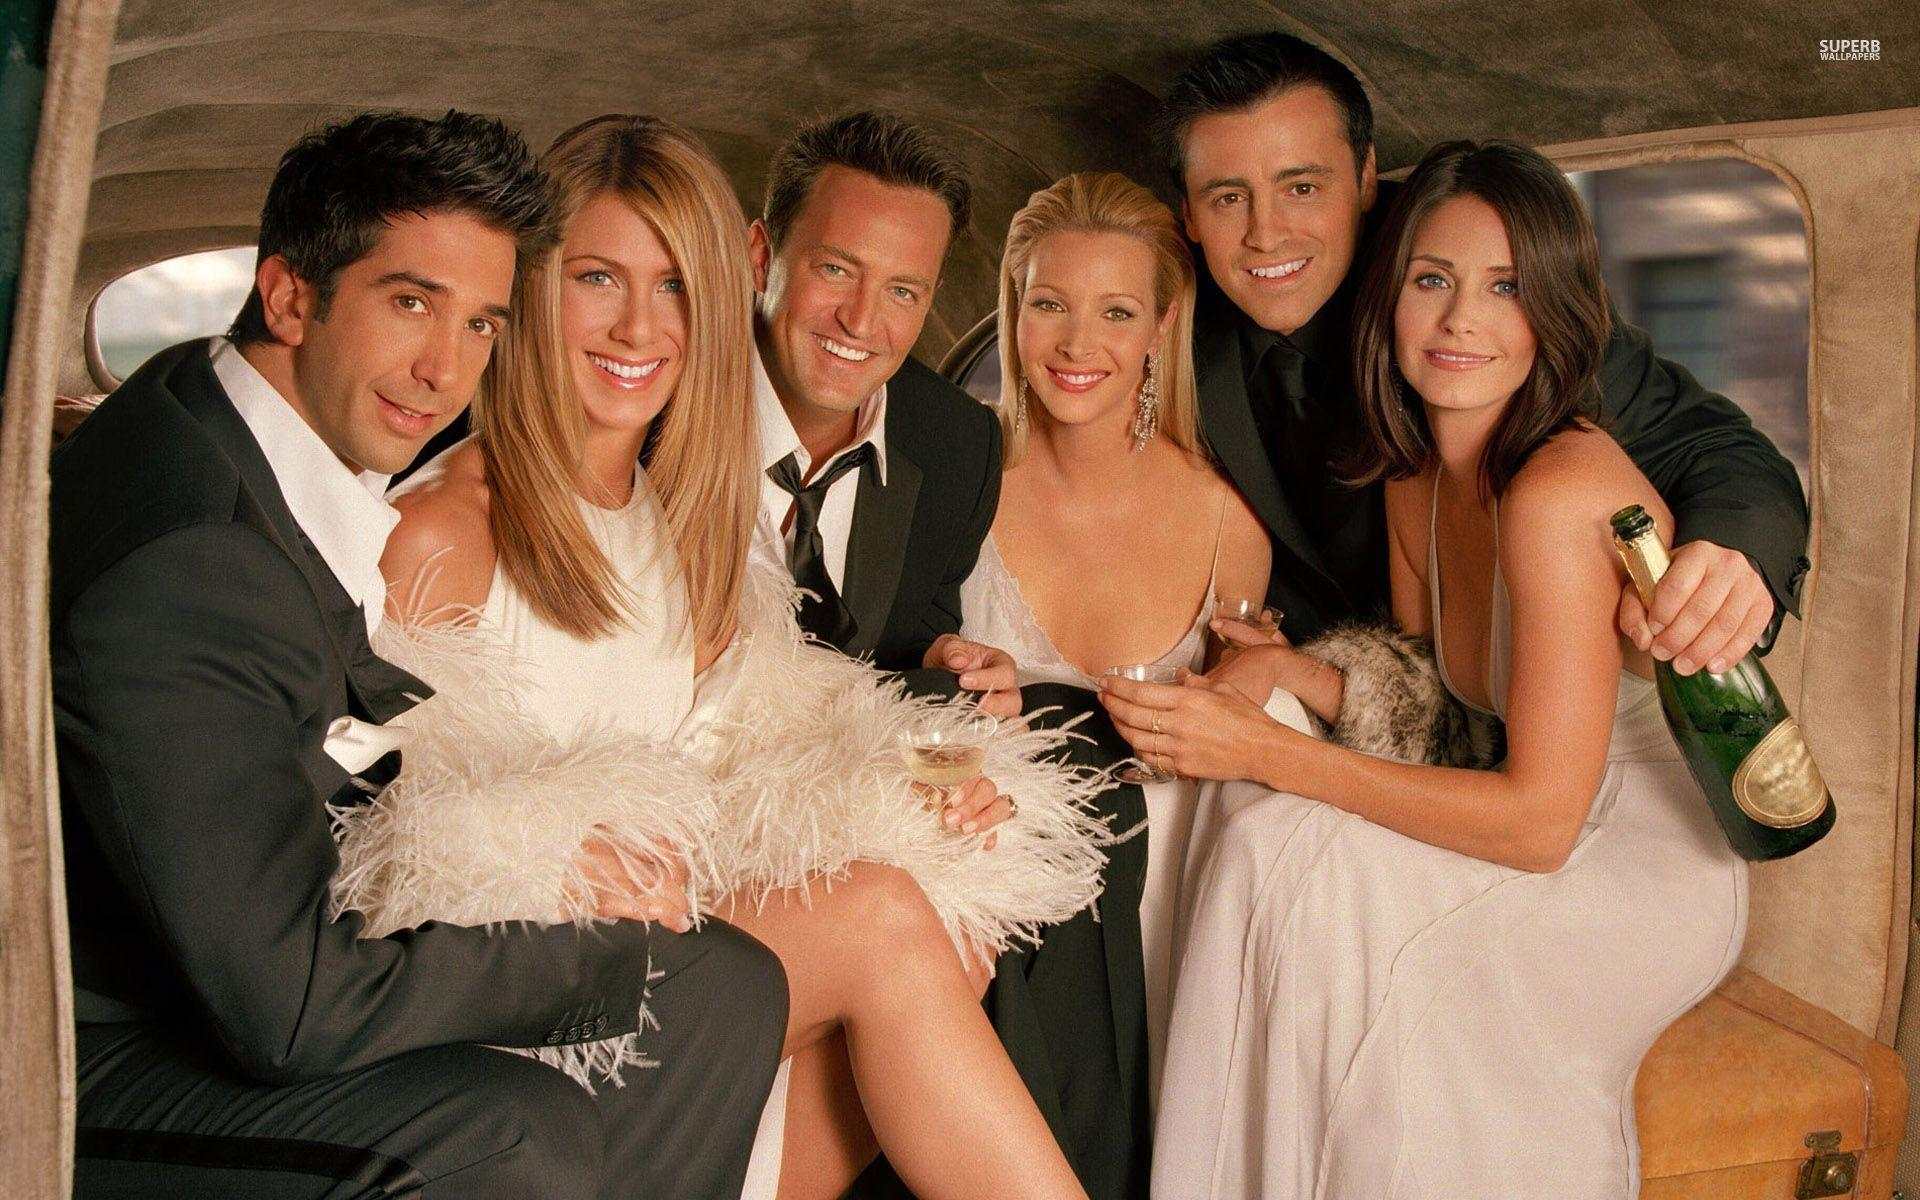 Friends season 10 download 1080p | Friends Season 10